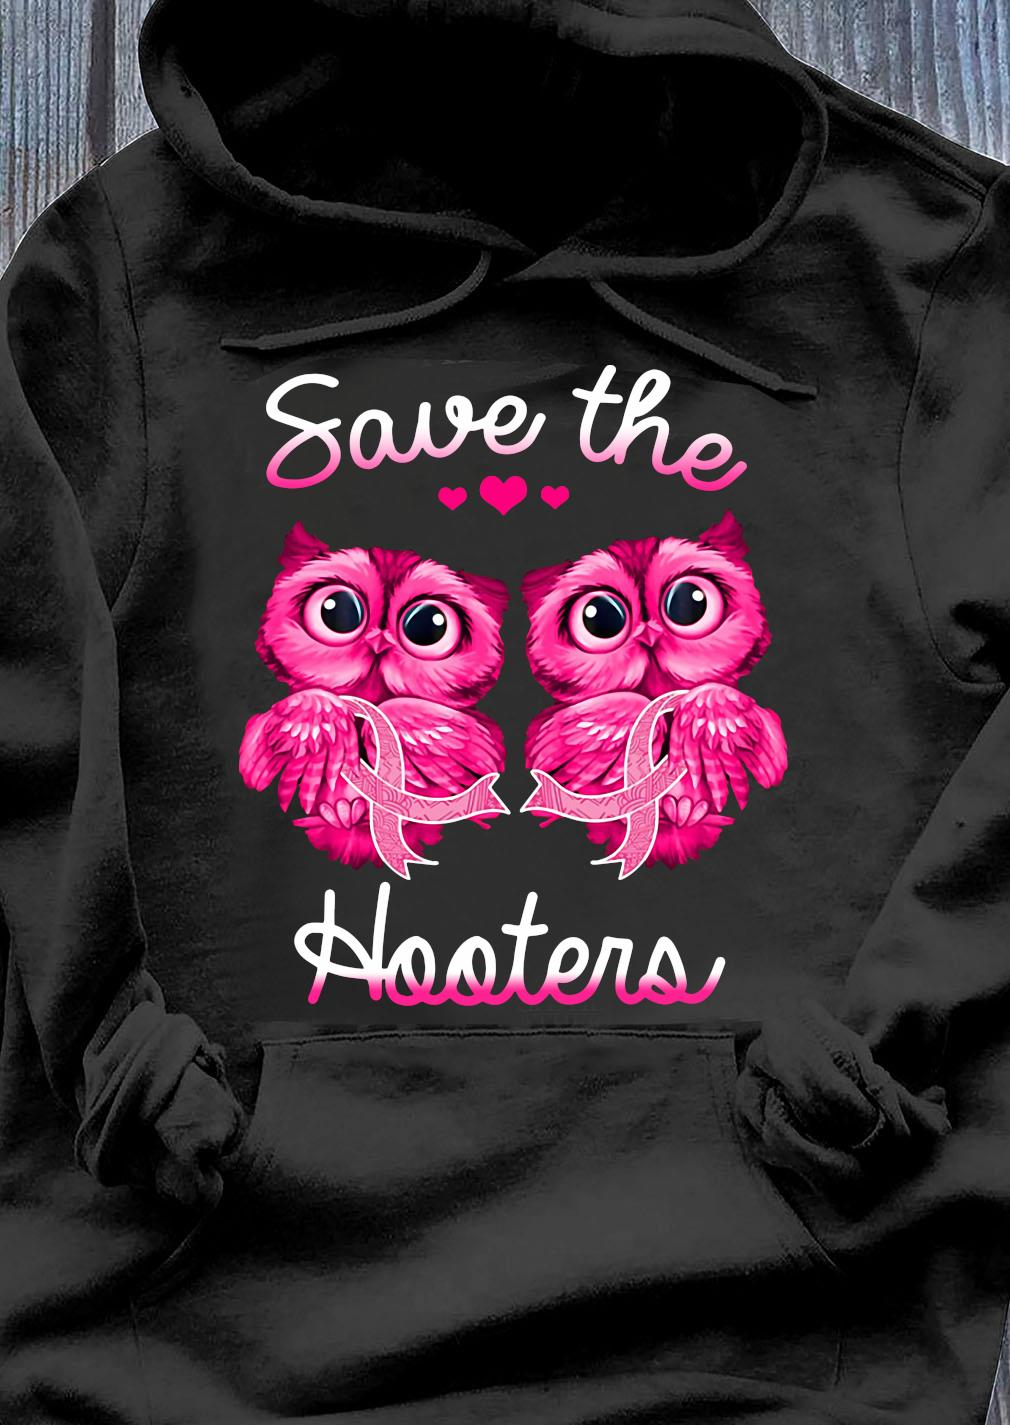 Breast Cancer awareness owls save the hooters shirtBreast Cancer Awareness Owls Save The Hooters Shirt Hoodie